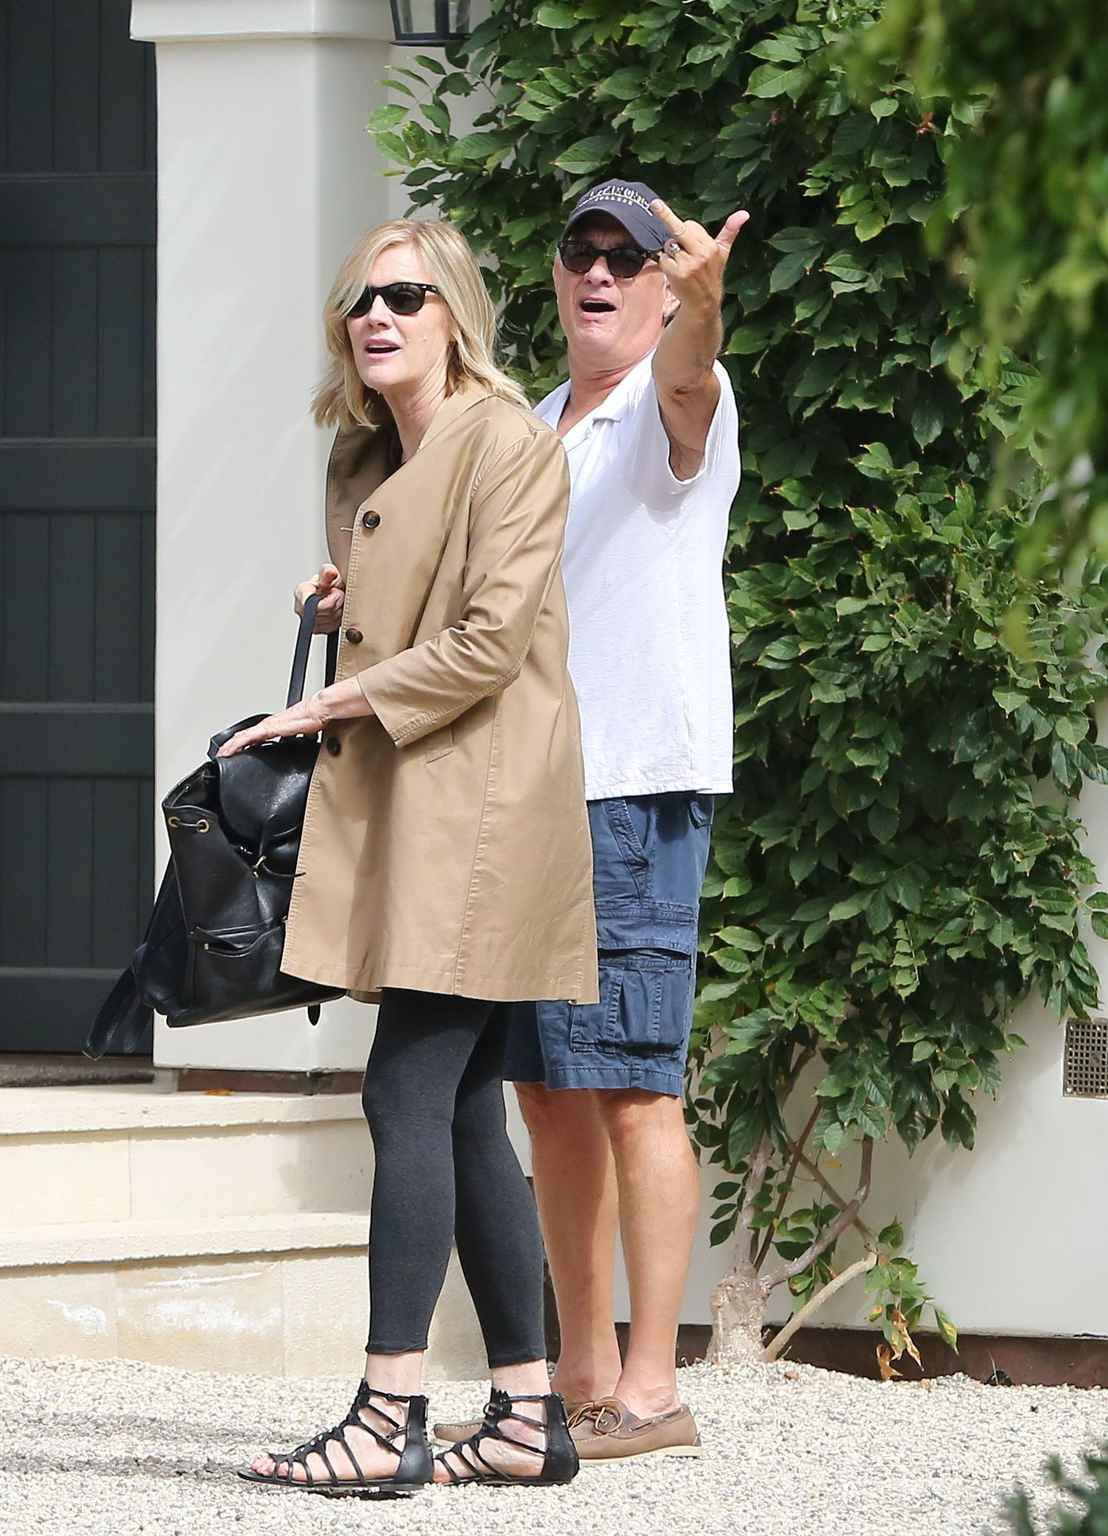 Sunday, September 9, 2018 - Tom Hanks goes casual in a polo t-shirt and cargo shorts as he steps out for a double date with wife Rita Wilson and another couple in Santa Monica, CA. Wilson is striking in a black lace minidress.